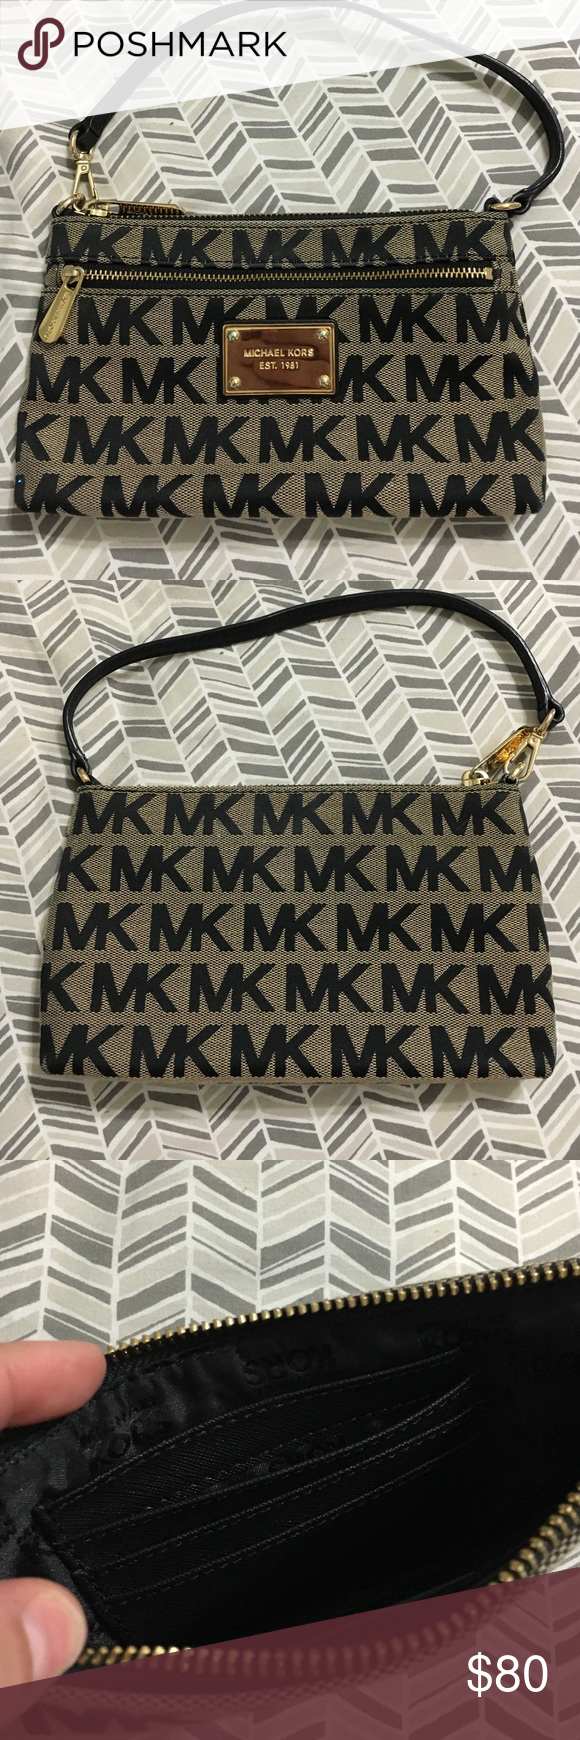 Black Michael Kors Wristlet Black Michael Kors wristlet New Without Tags, holds cards on inside as well as has a pocket for extra things on the outside Michael Kors Bags Clutches & Wristlets